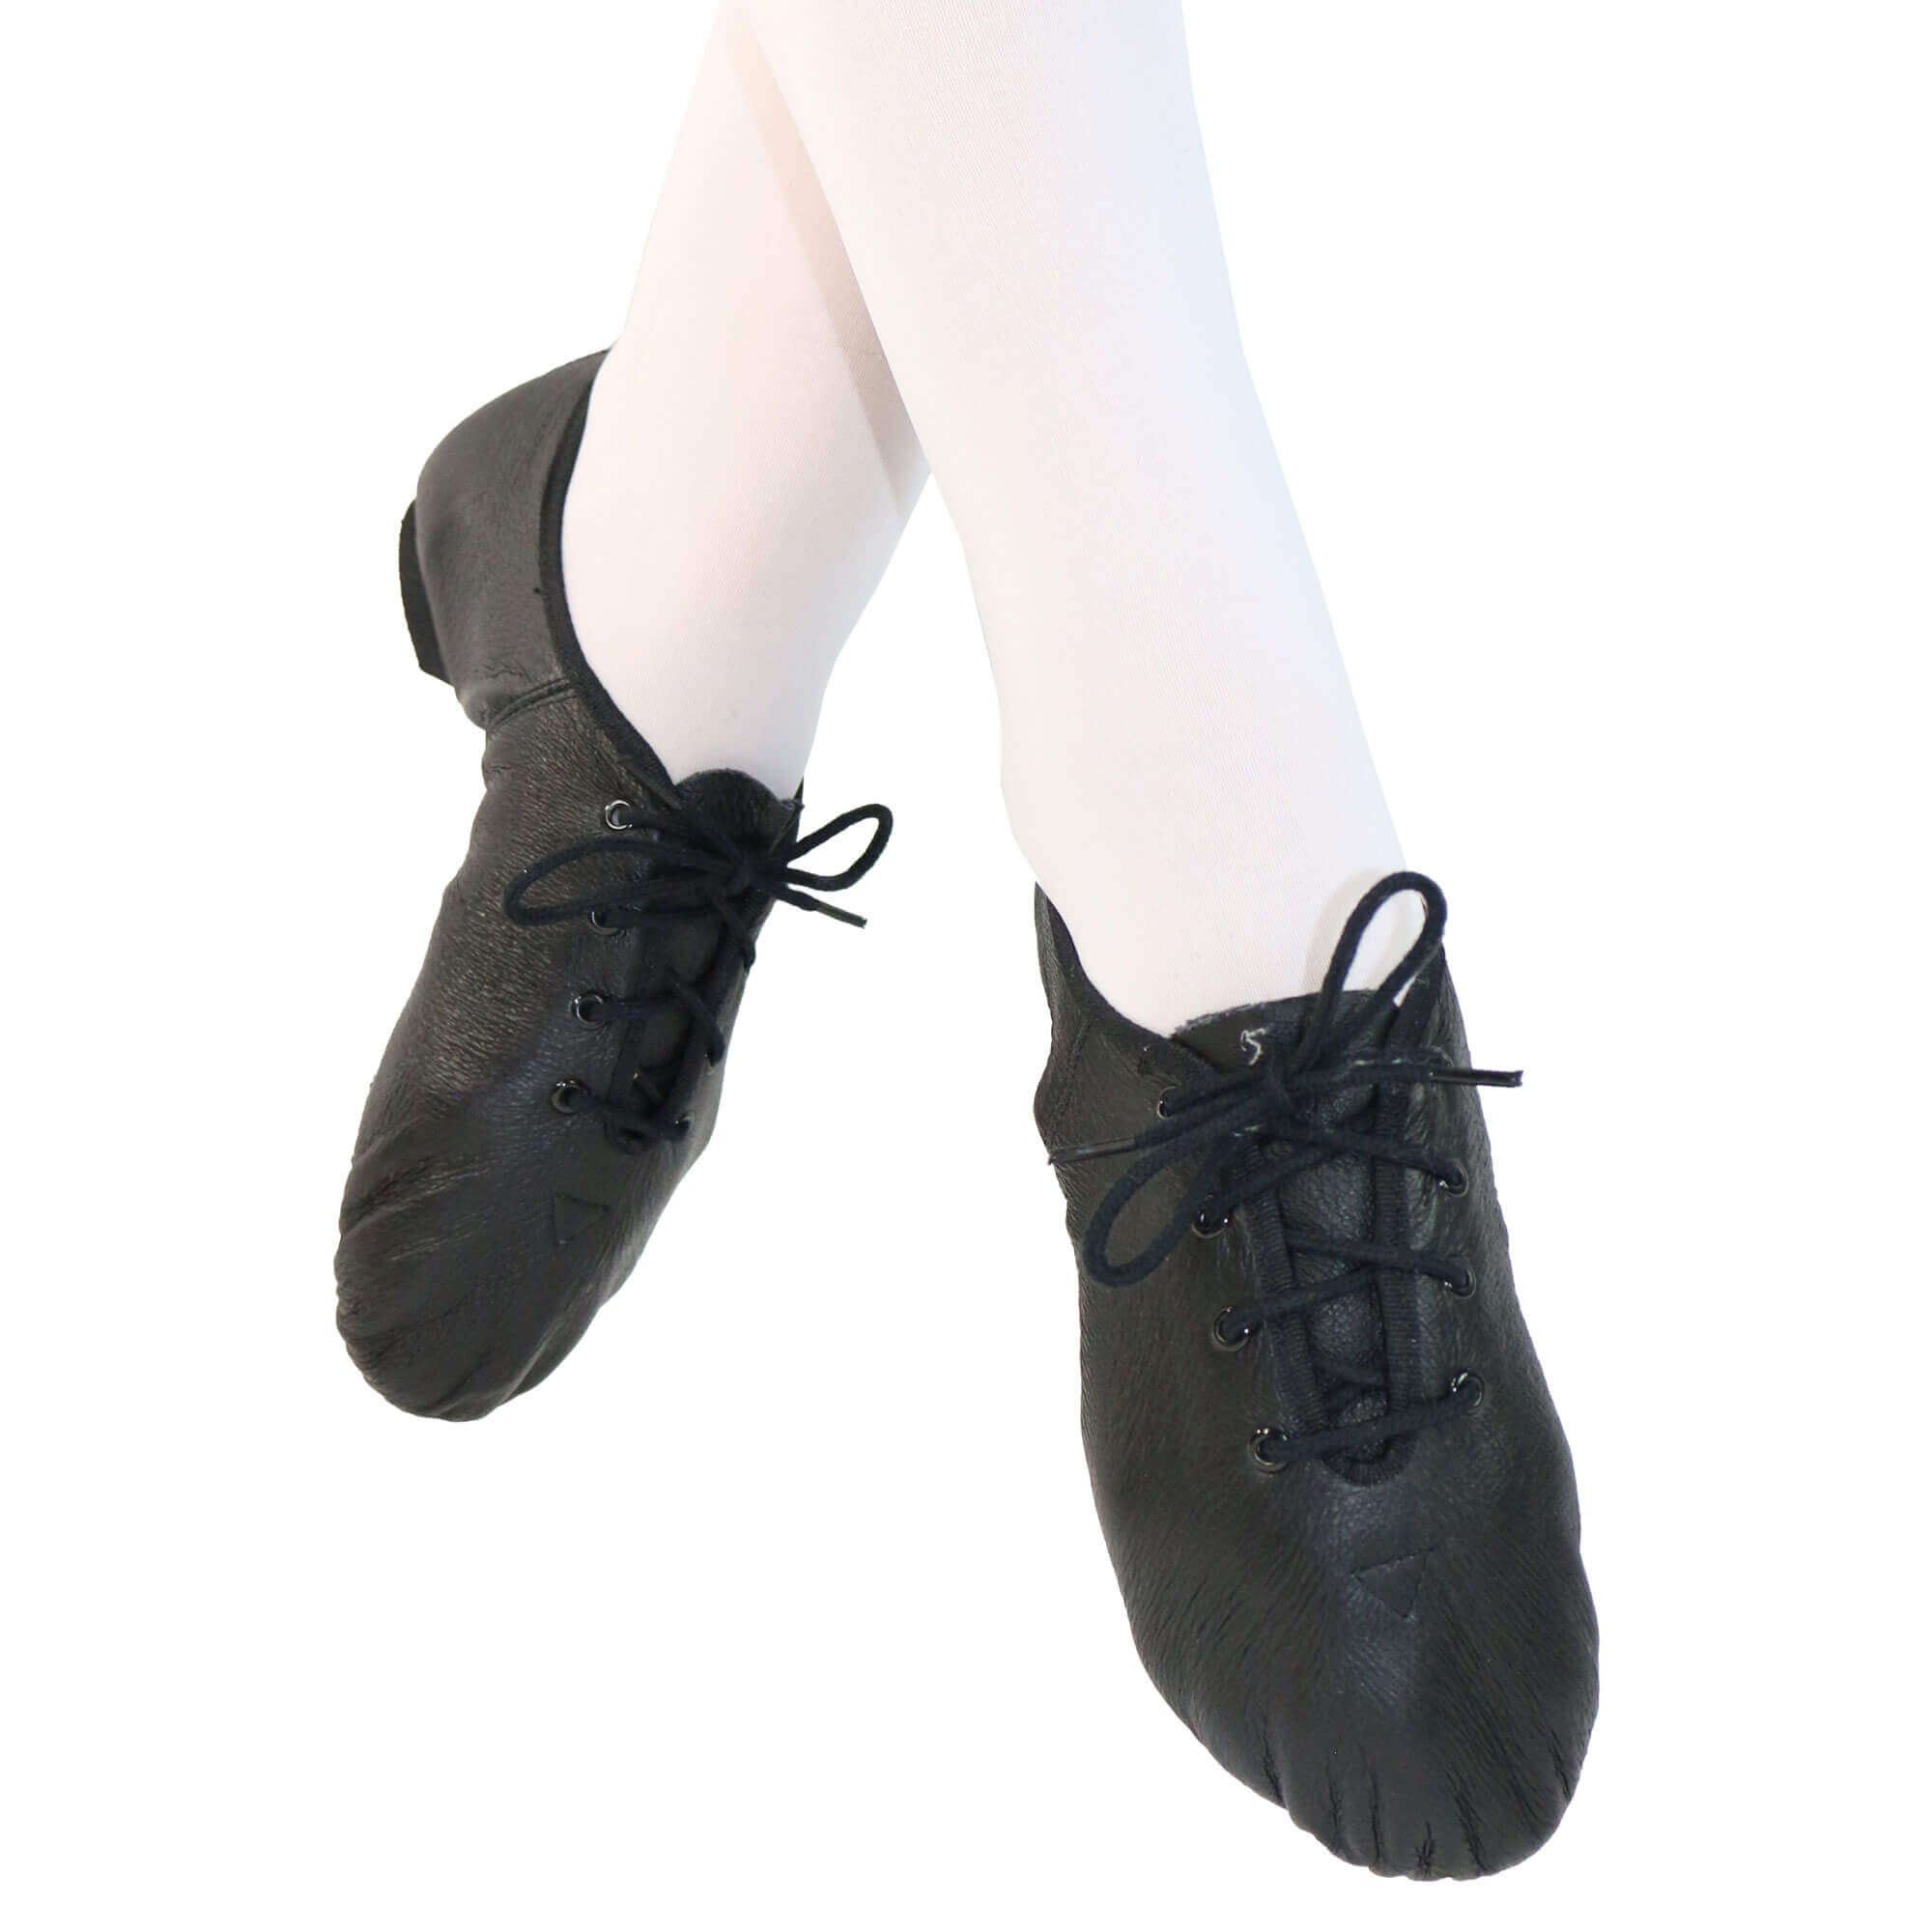 Danzcue Adult Jazzsoft Jazz Shoes